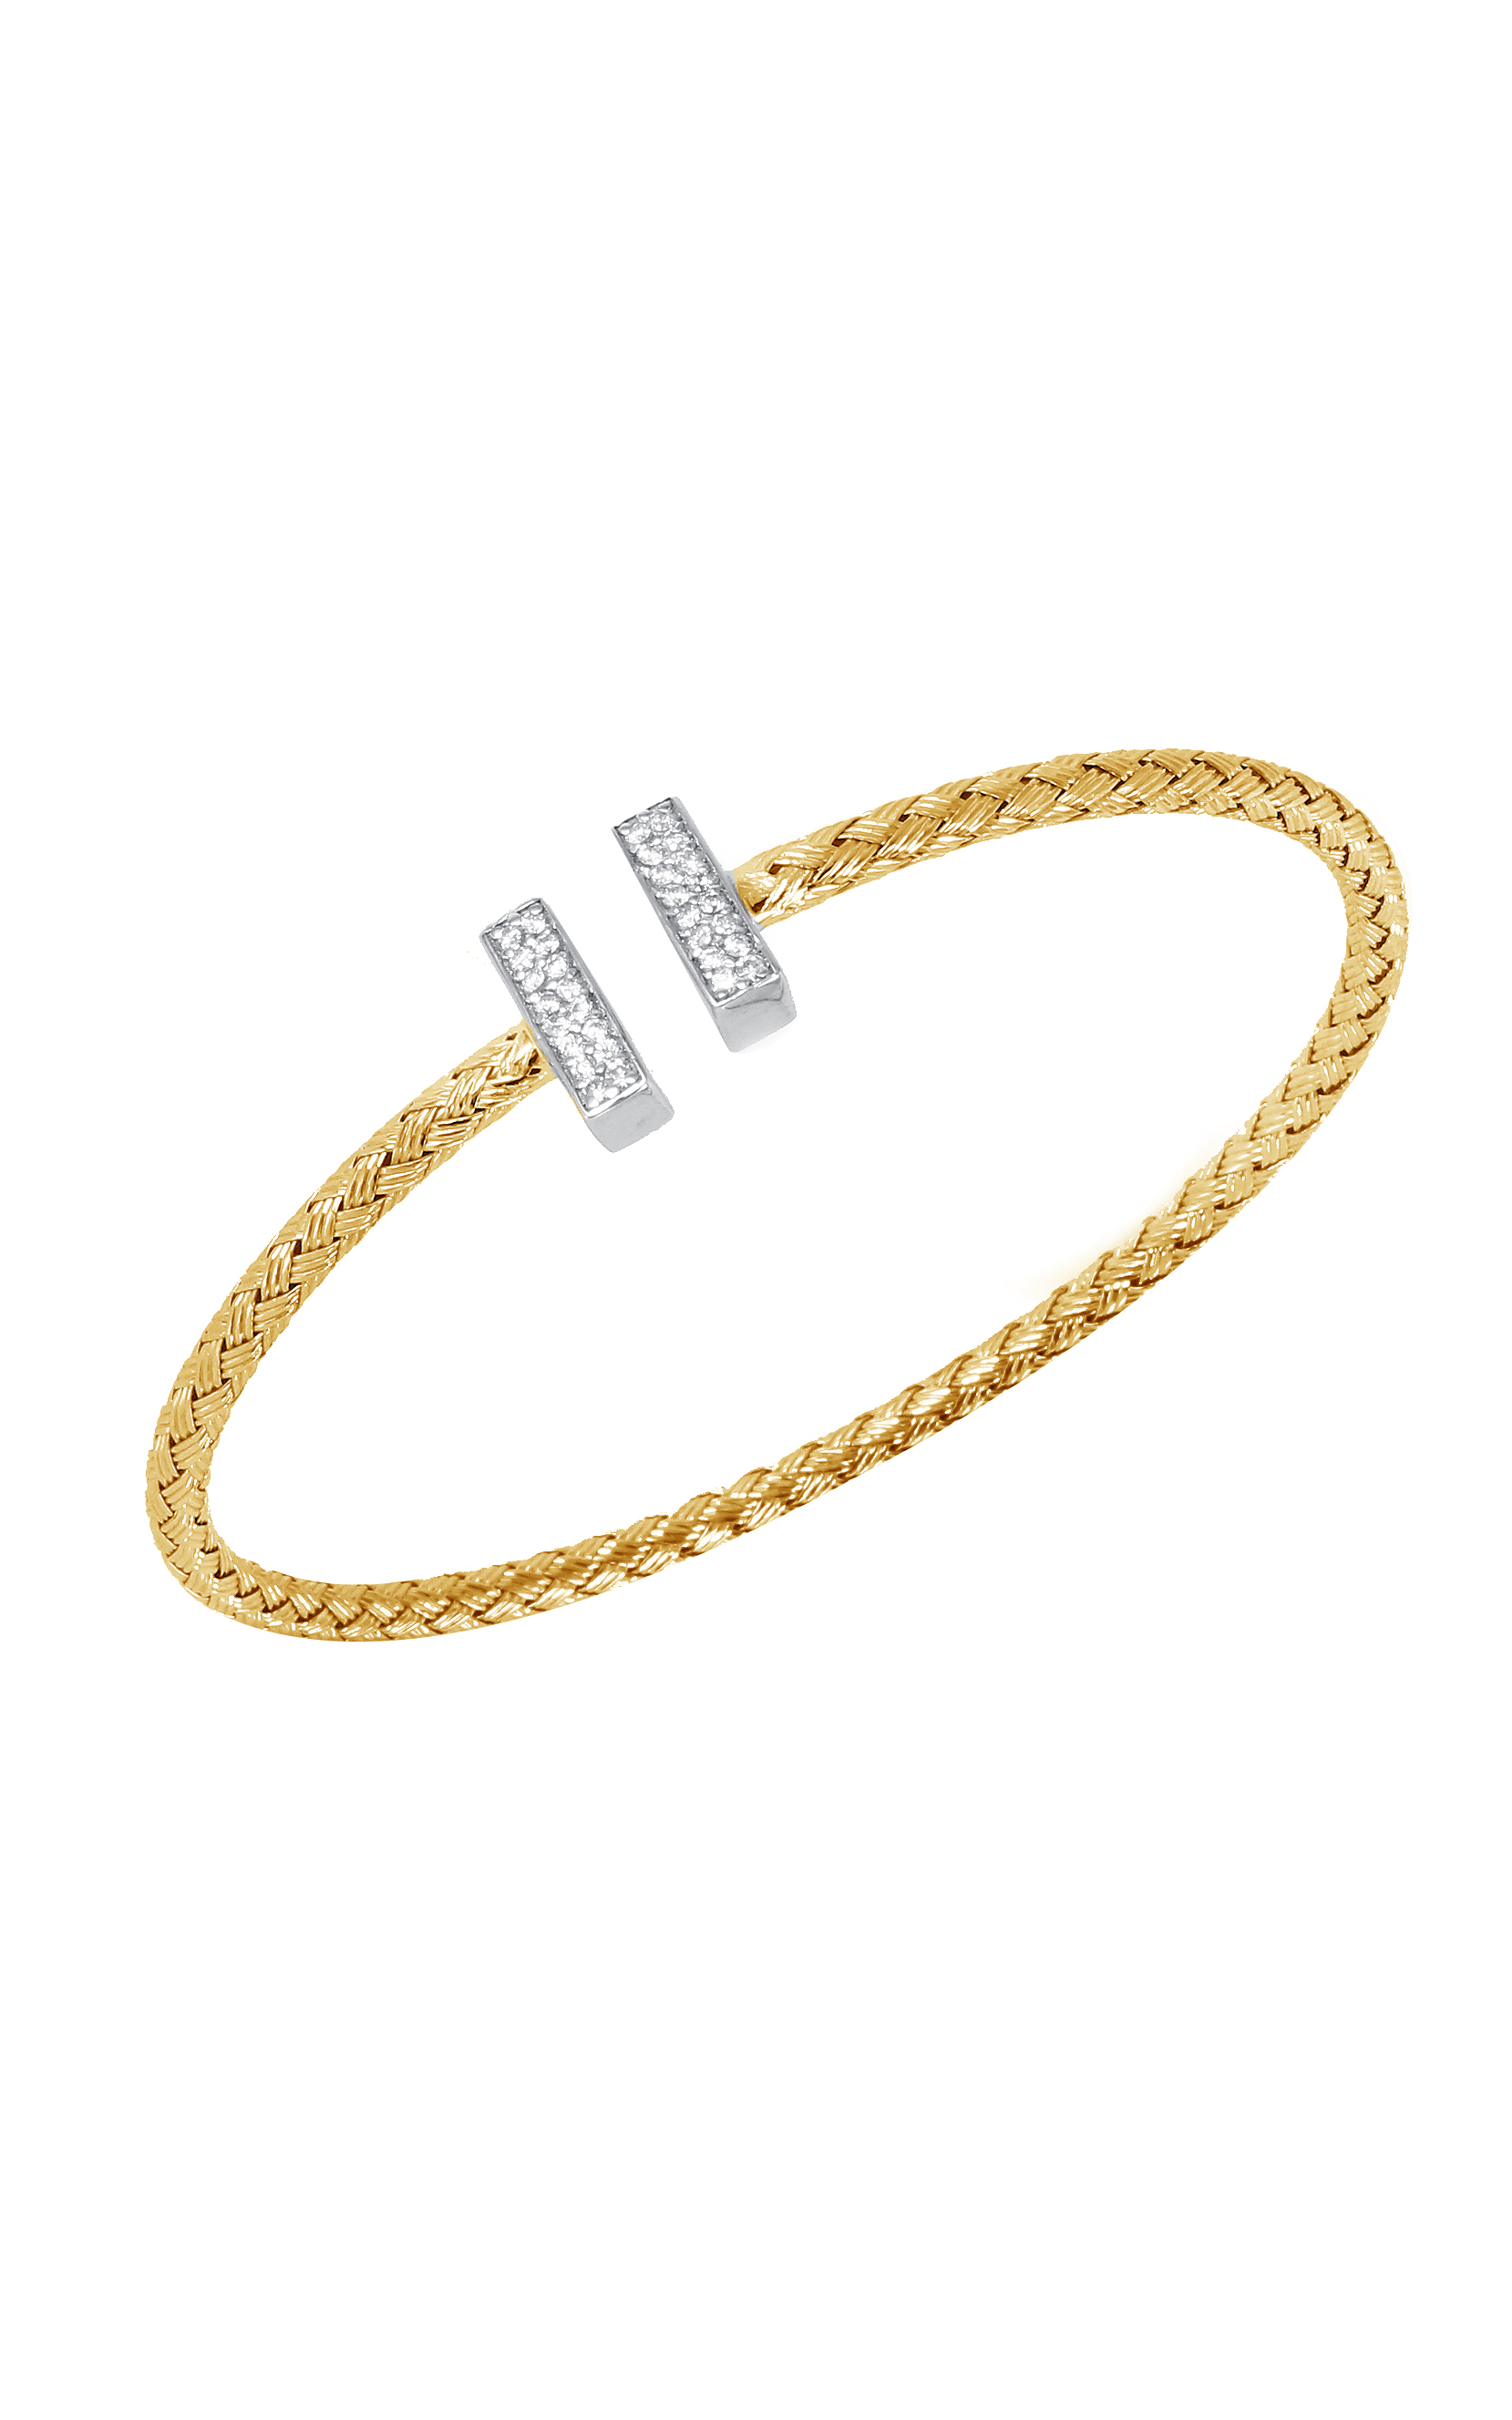 Charles Garnier Paolo Collection Bracelet MLC8182YWZ product image